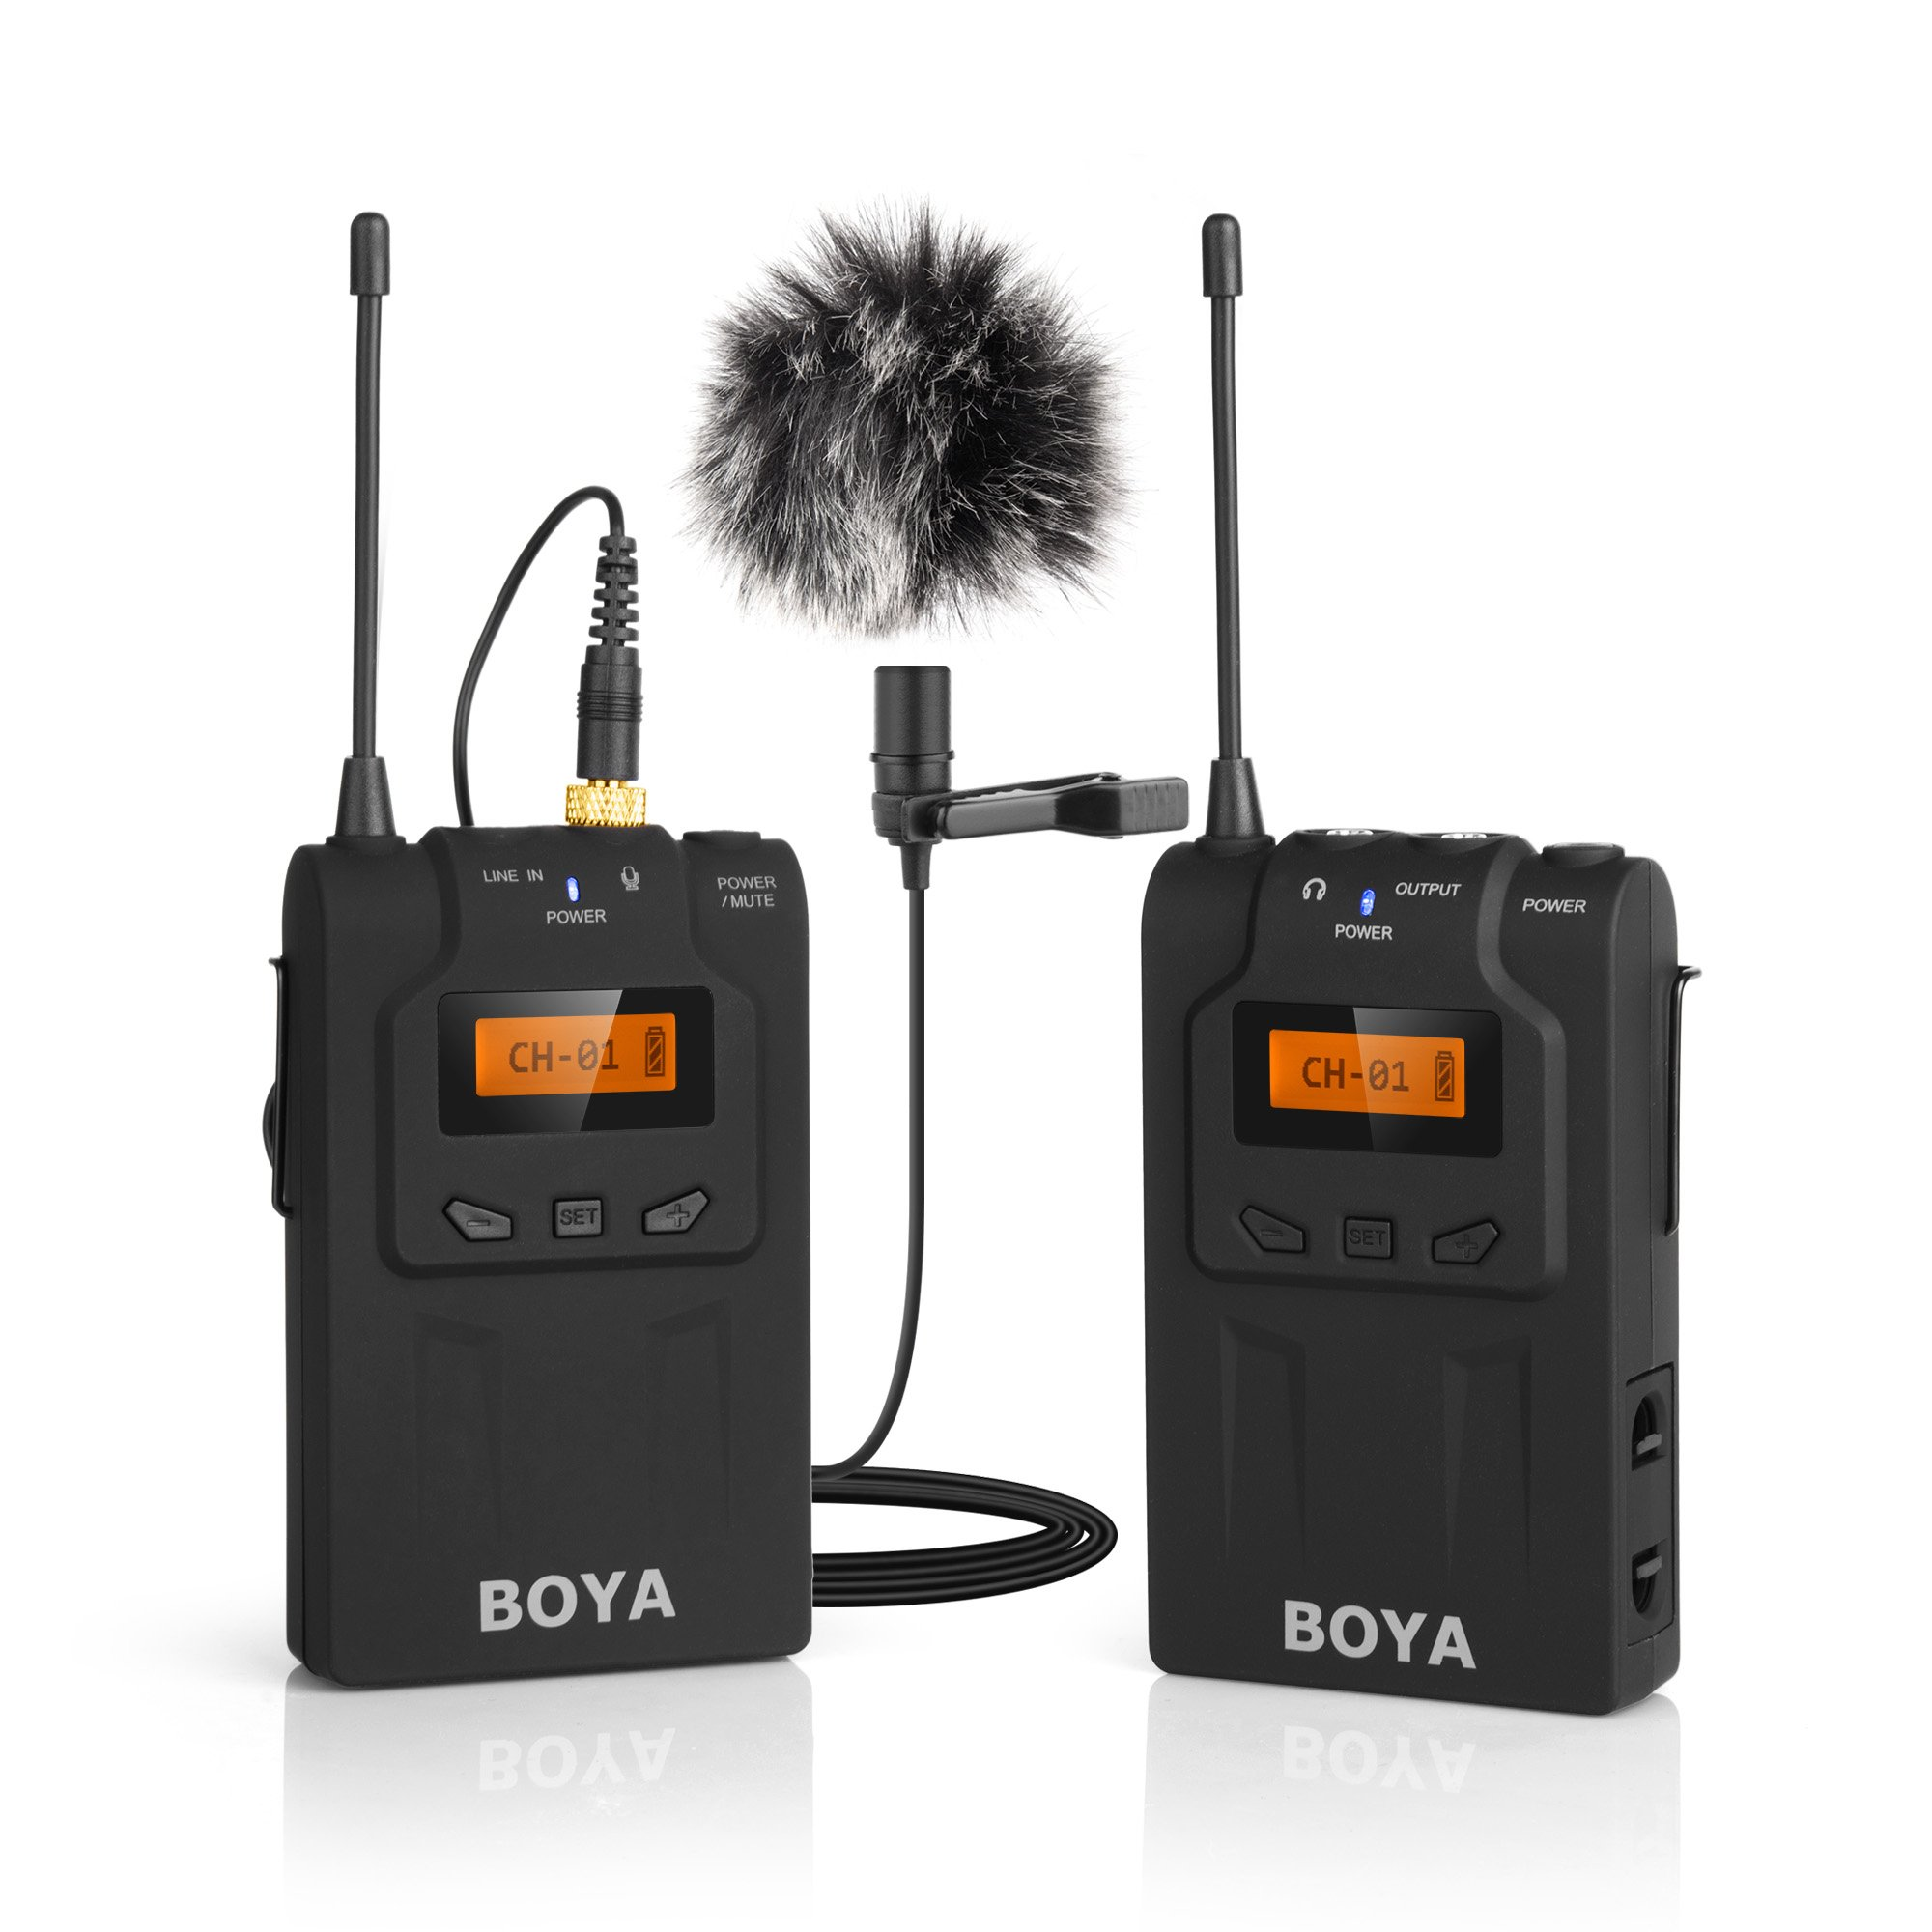 BOYA BY-WM6 UHF Professional Wireless Omnidirectional Lavalier Lapel Microphone System with 48 Optional Channels for Canon Sony Nikon Panasonic DSLR ENG EFP DV Video Camera by BOYA